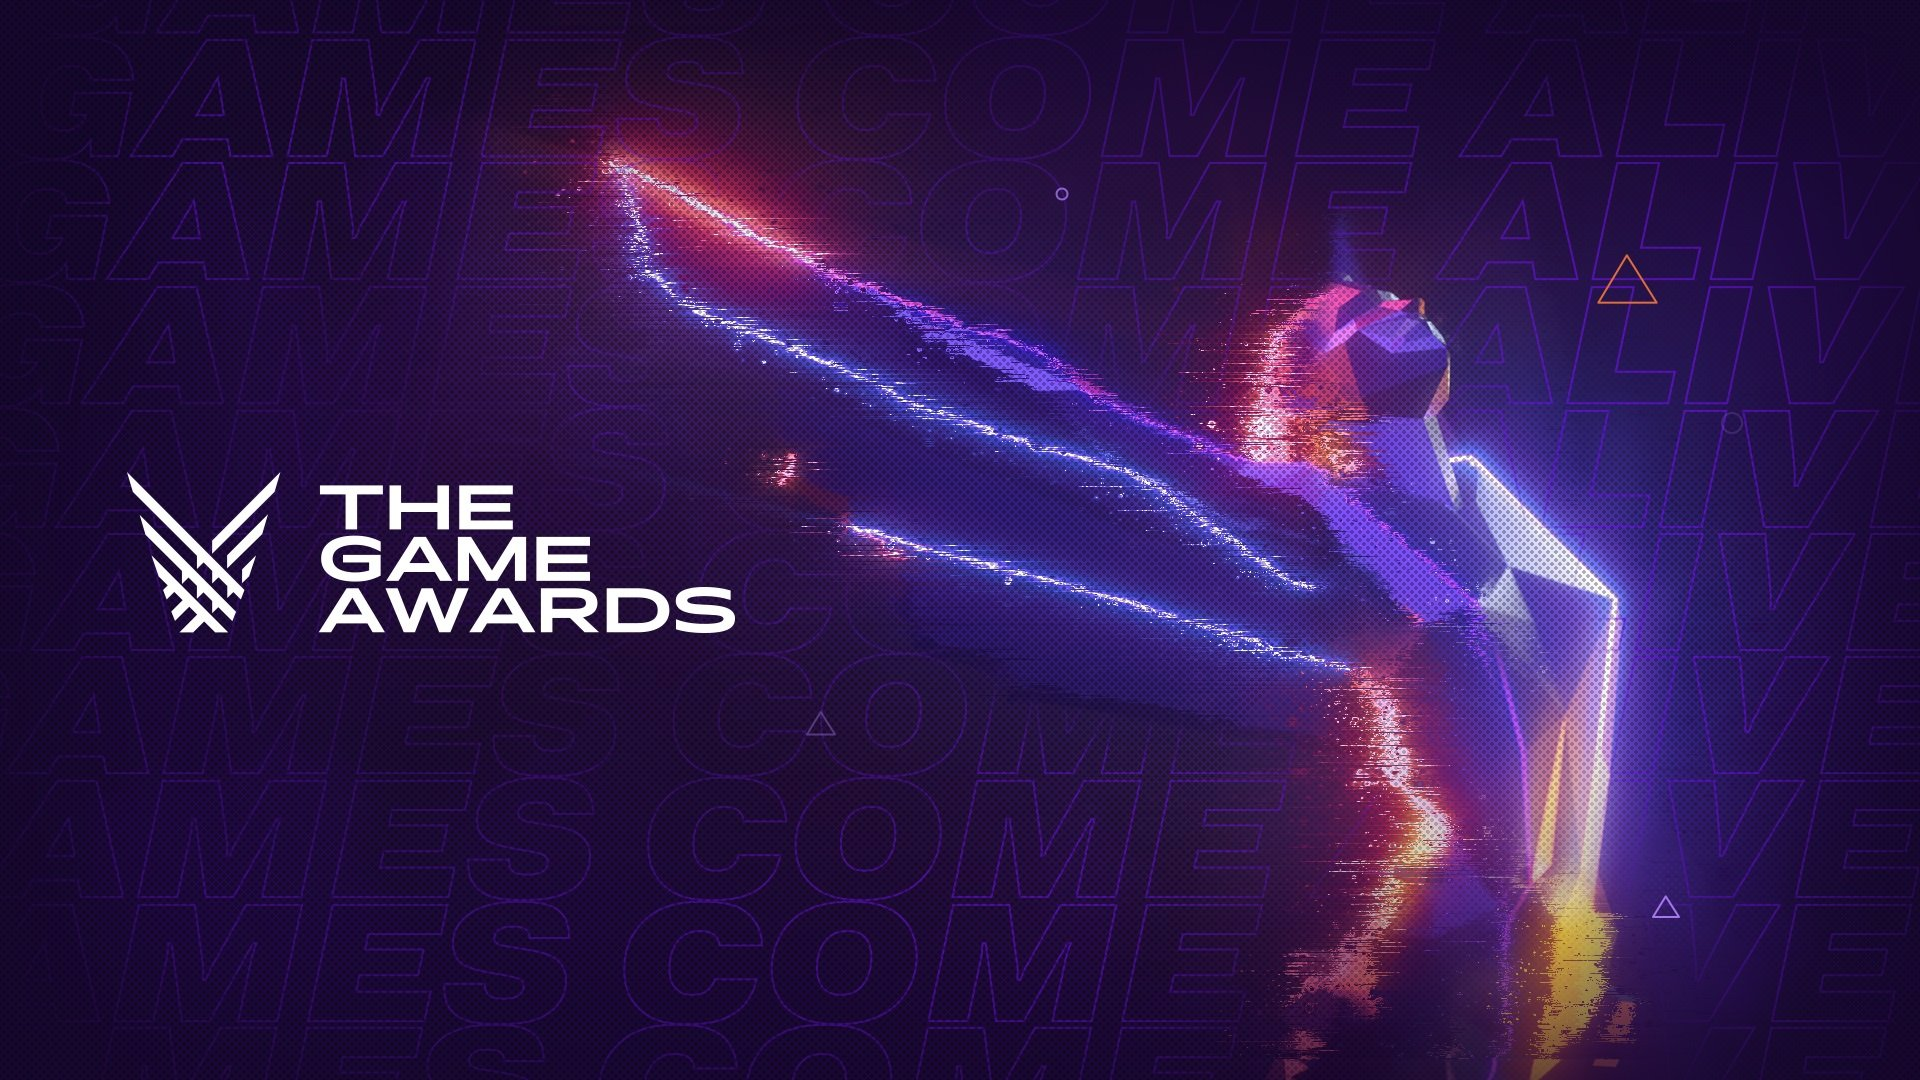 The Game Awards 2019 tried way too hard to be something it's not